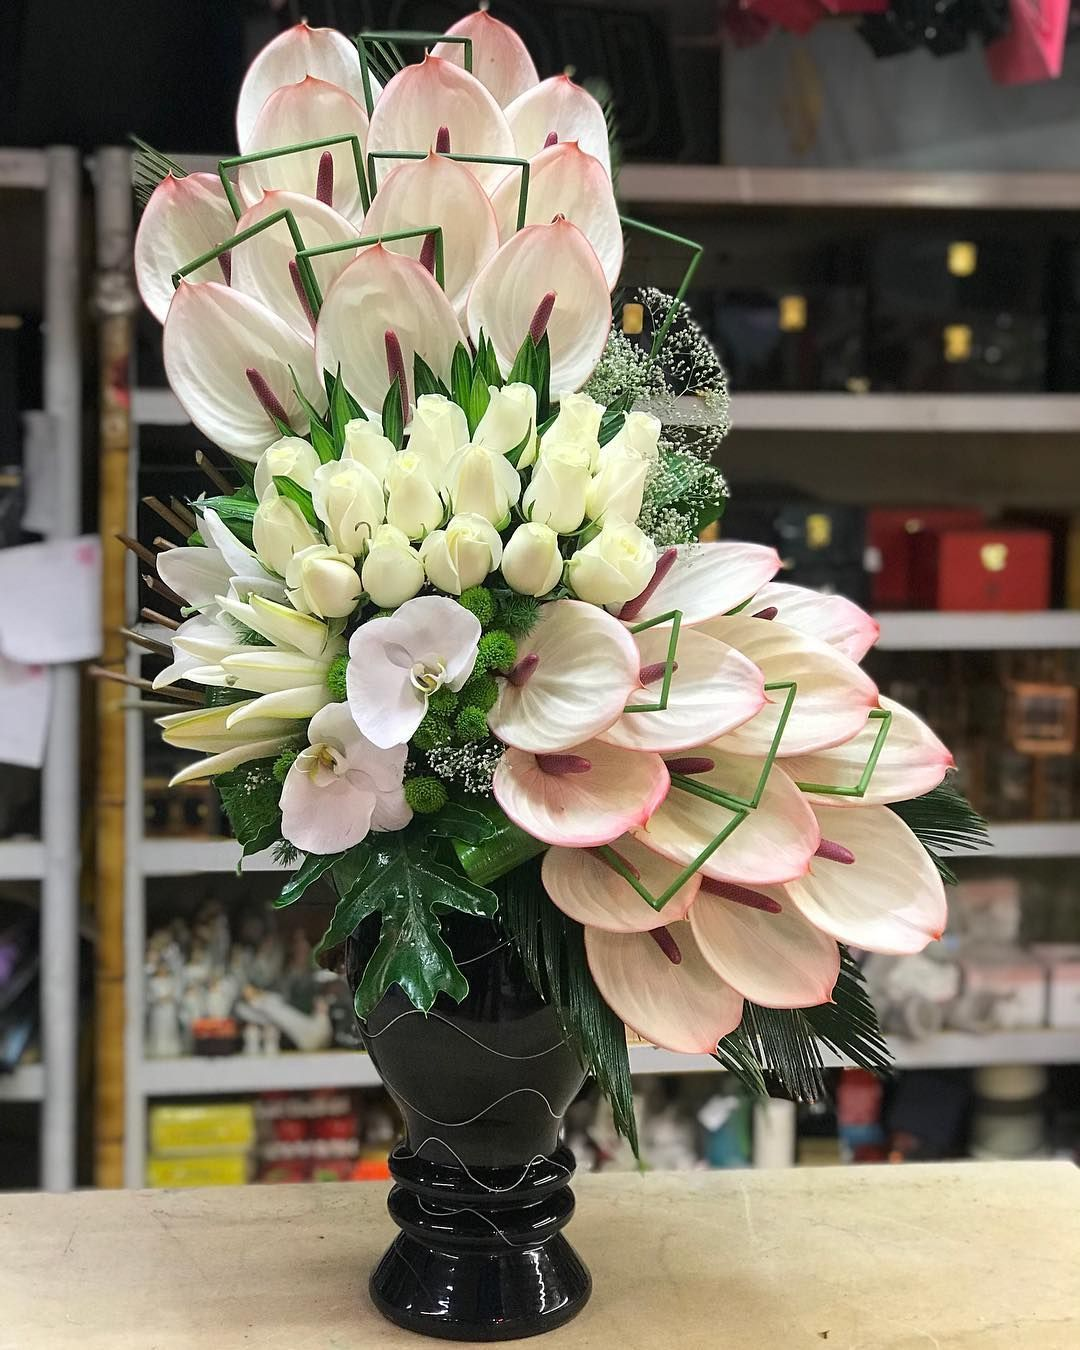 Pin by ellie on flower arrangements in 2020 with images